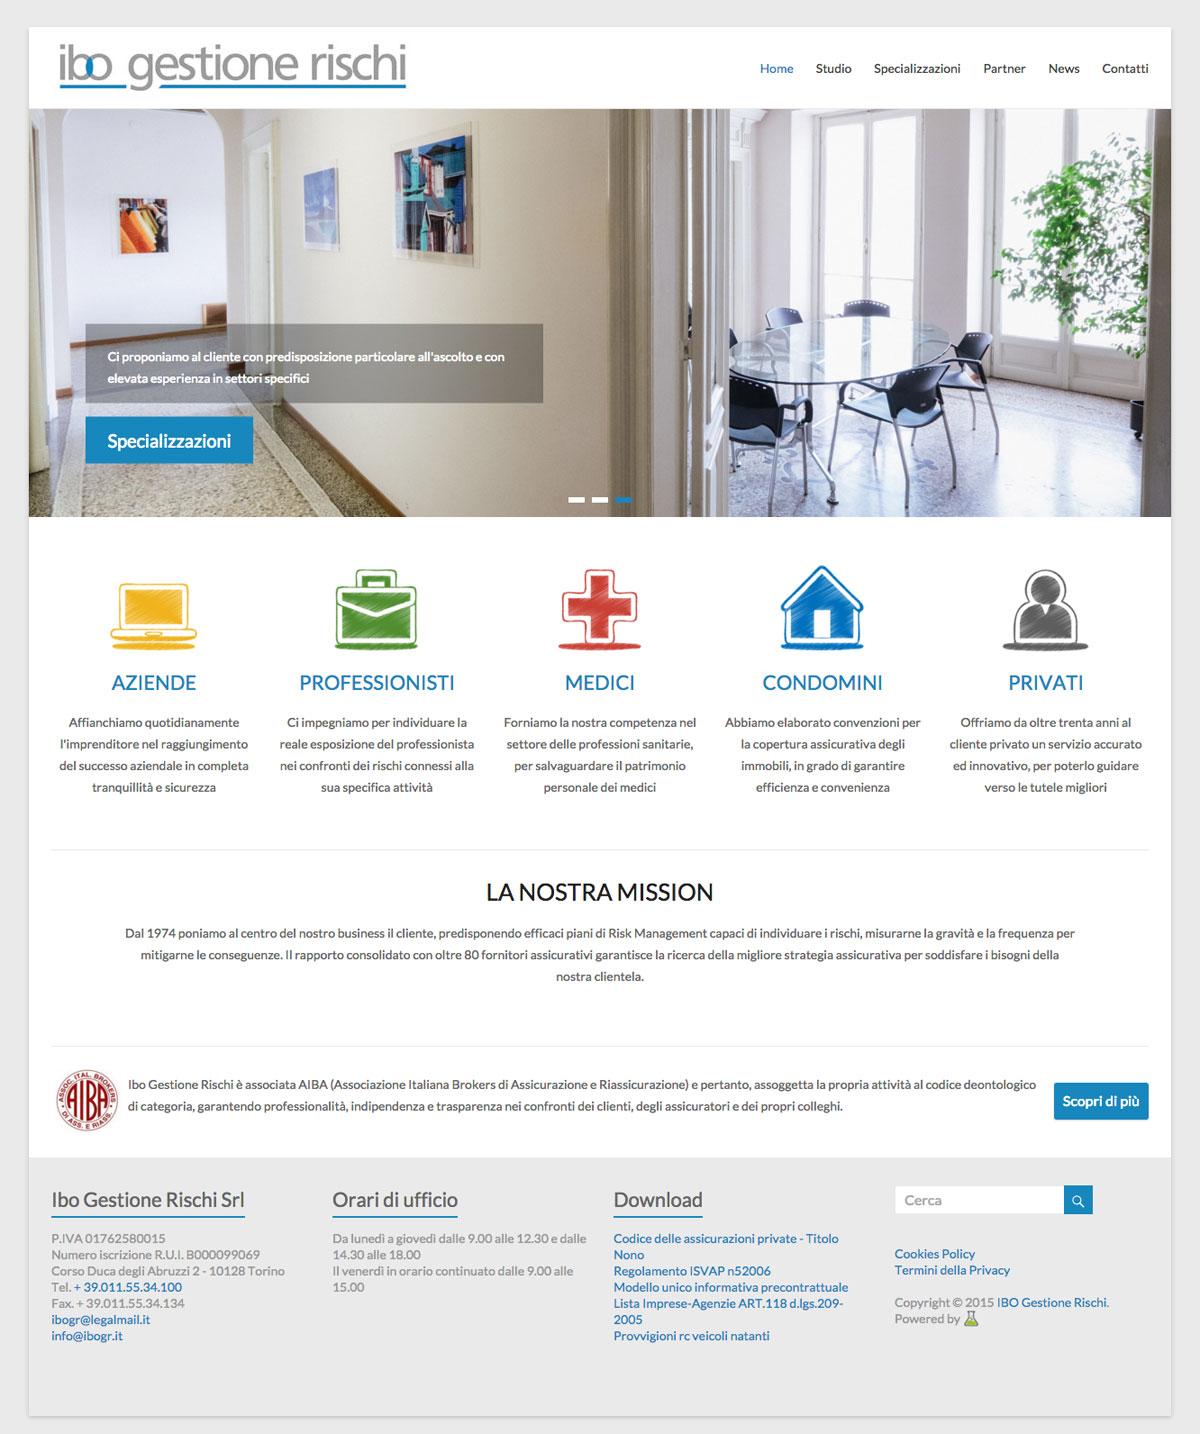 ibo gestione rischi homepage archibuzz